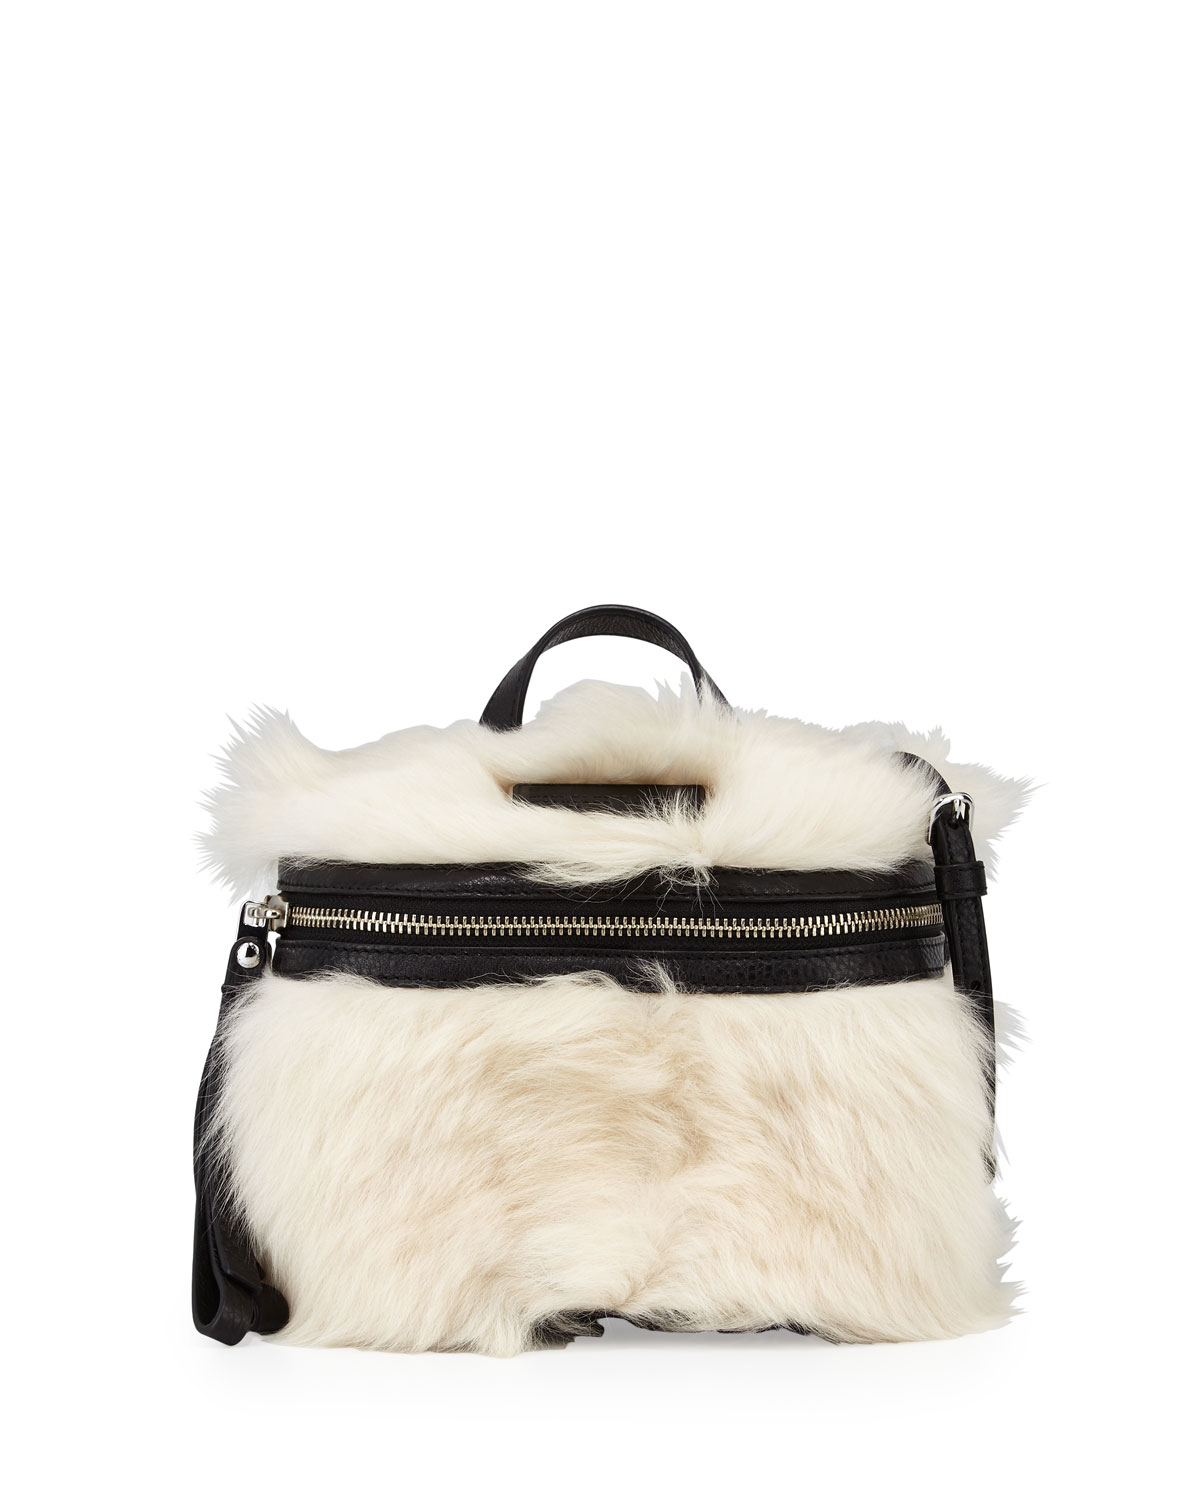 8b3f148a2ad0 MARC by Marc Jacobs Canteen Shearling Fur   Leather Crossbody Bag ...